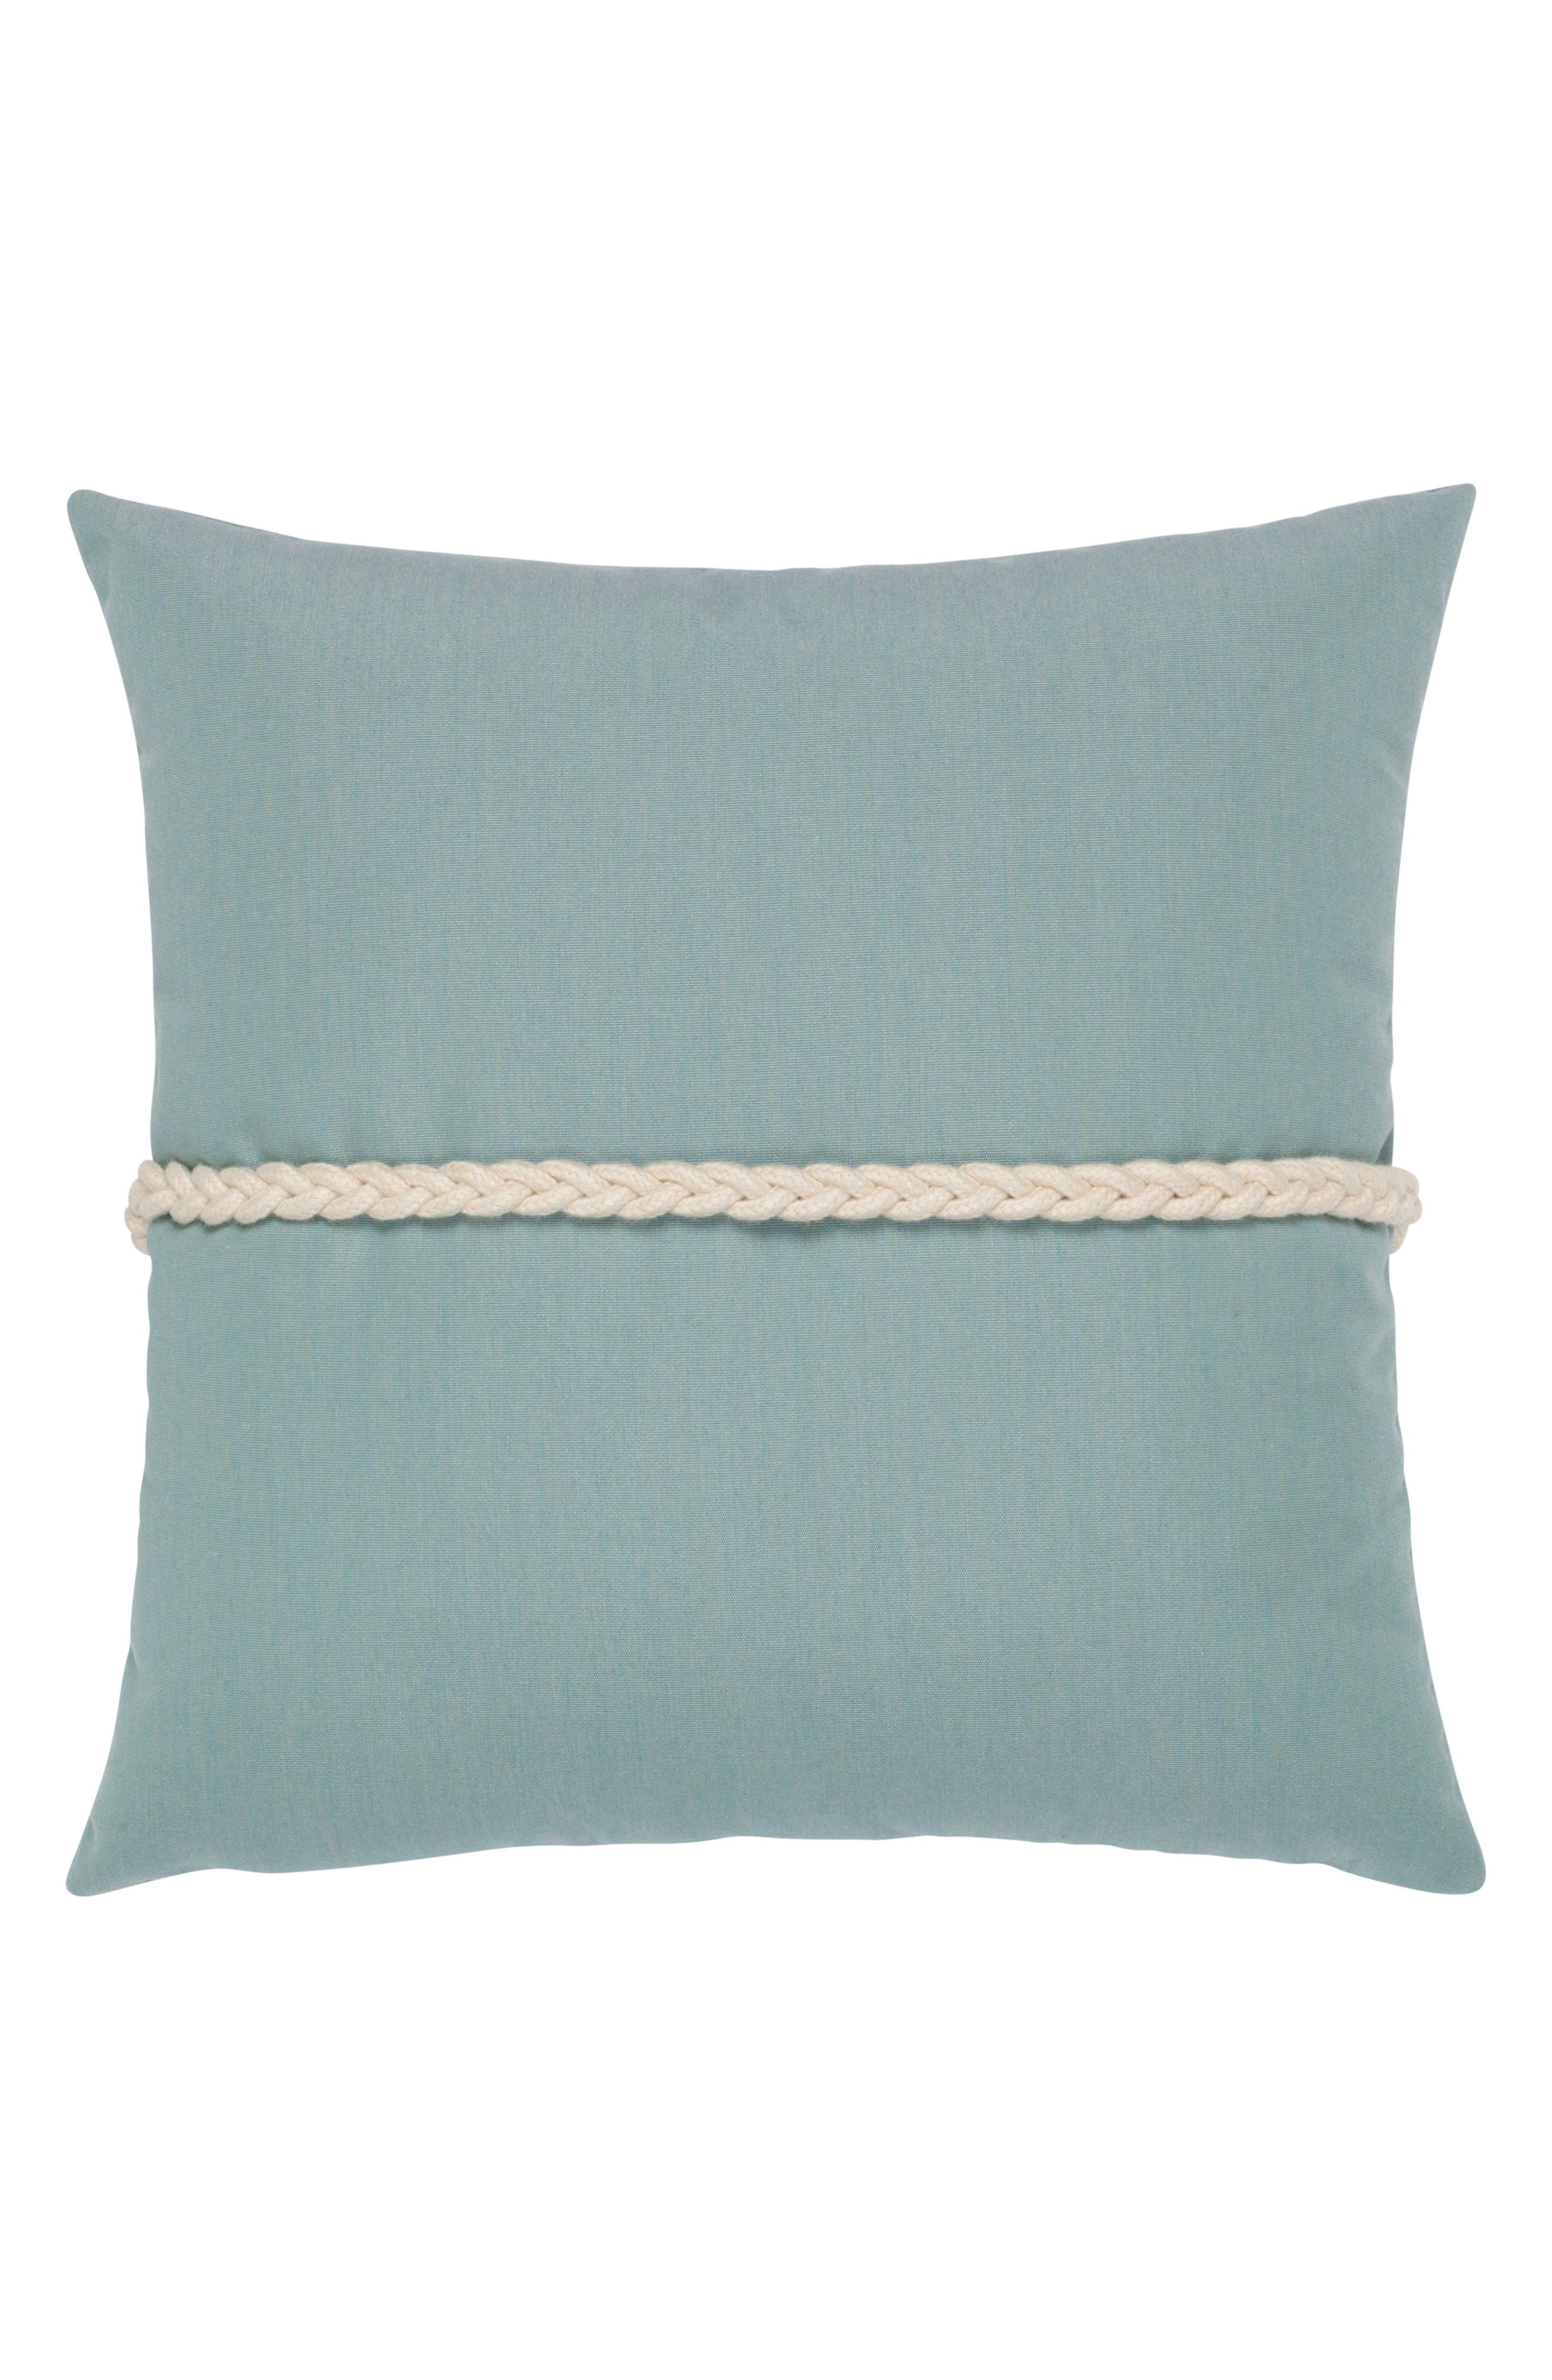 Frogs Clasp Indoor/Outdoor Accent Pillow,                             Alternate thumbnail 2, color,                             BLUE